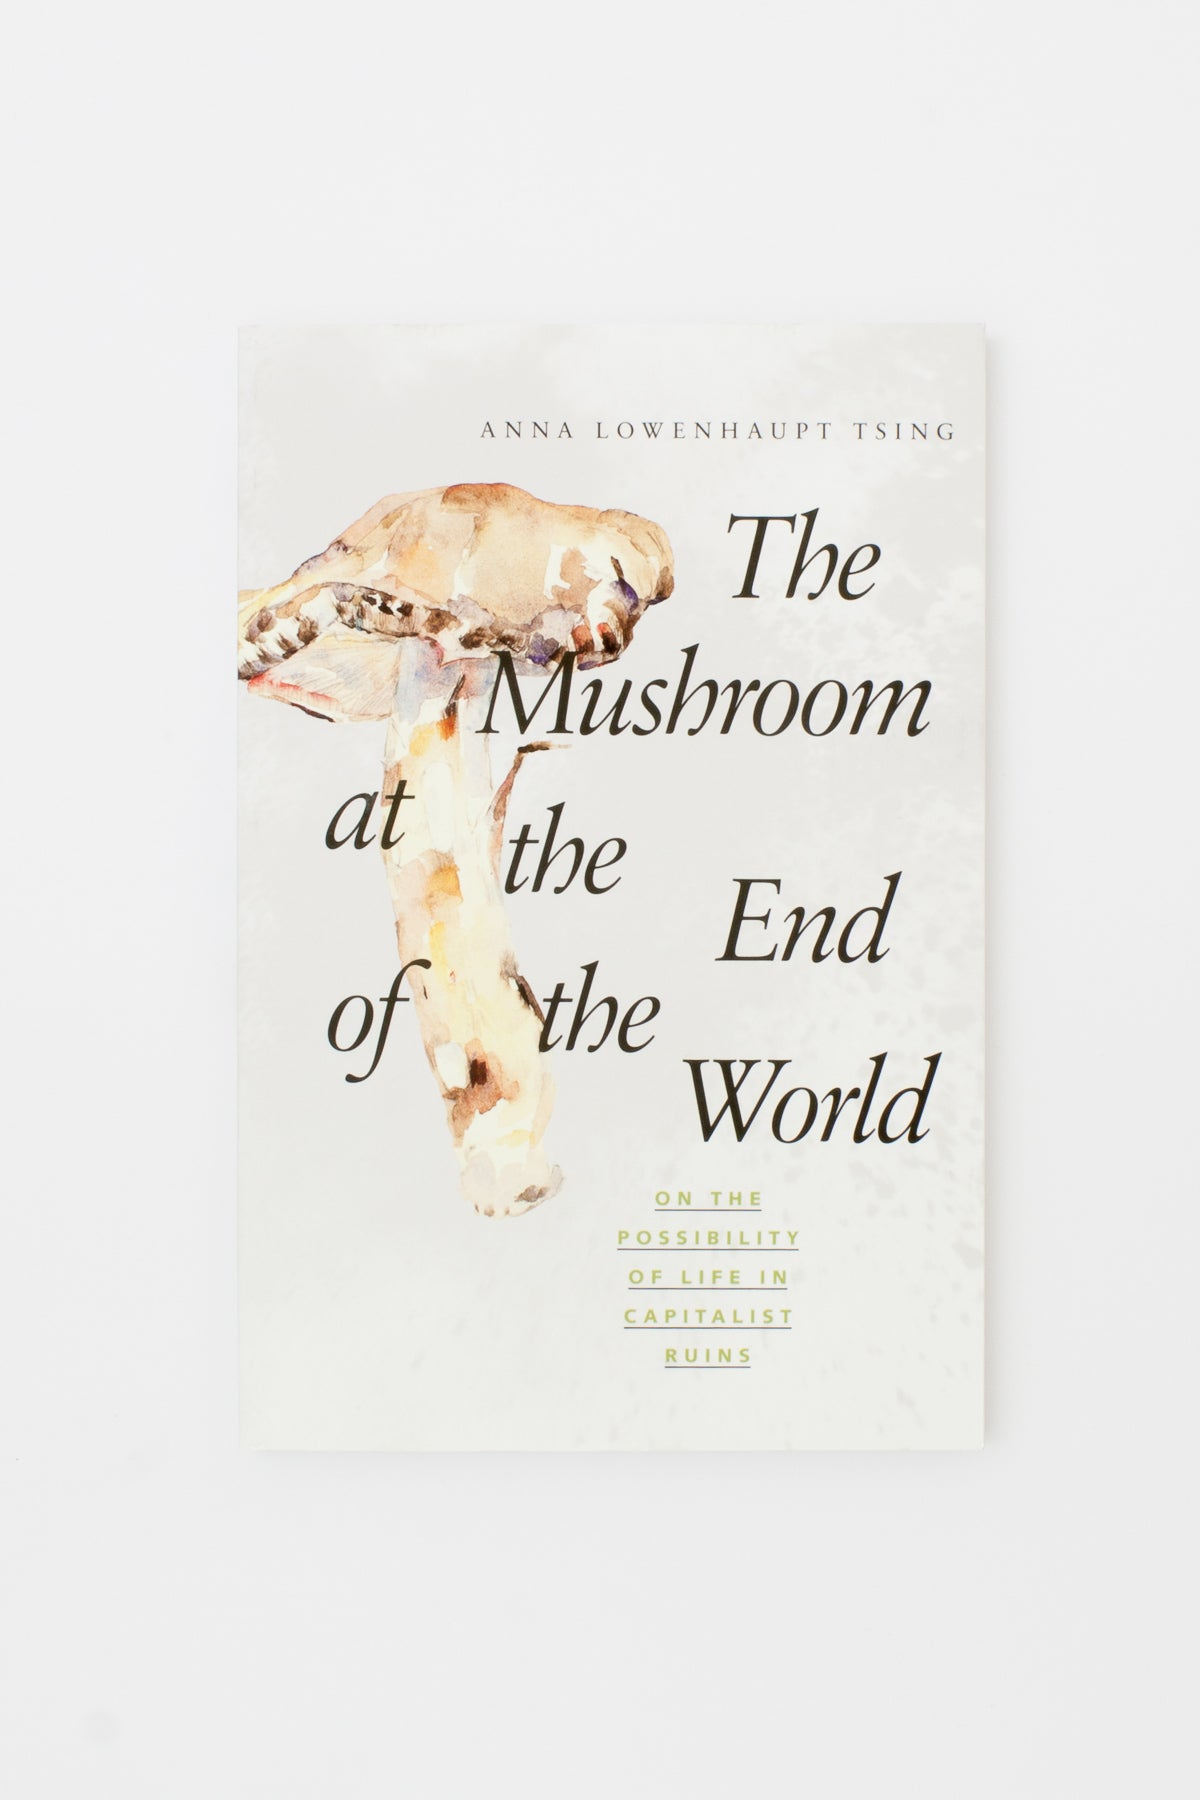 The Mushroom at the End of the World: On the Possibility of Life in Capitalist Ruins - Anna Lowenhaupt Tsing